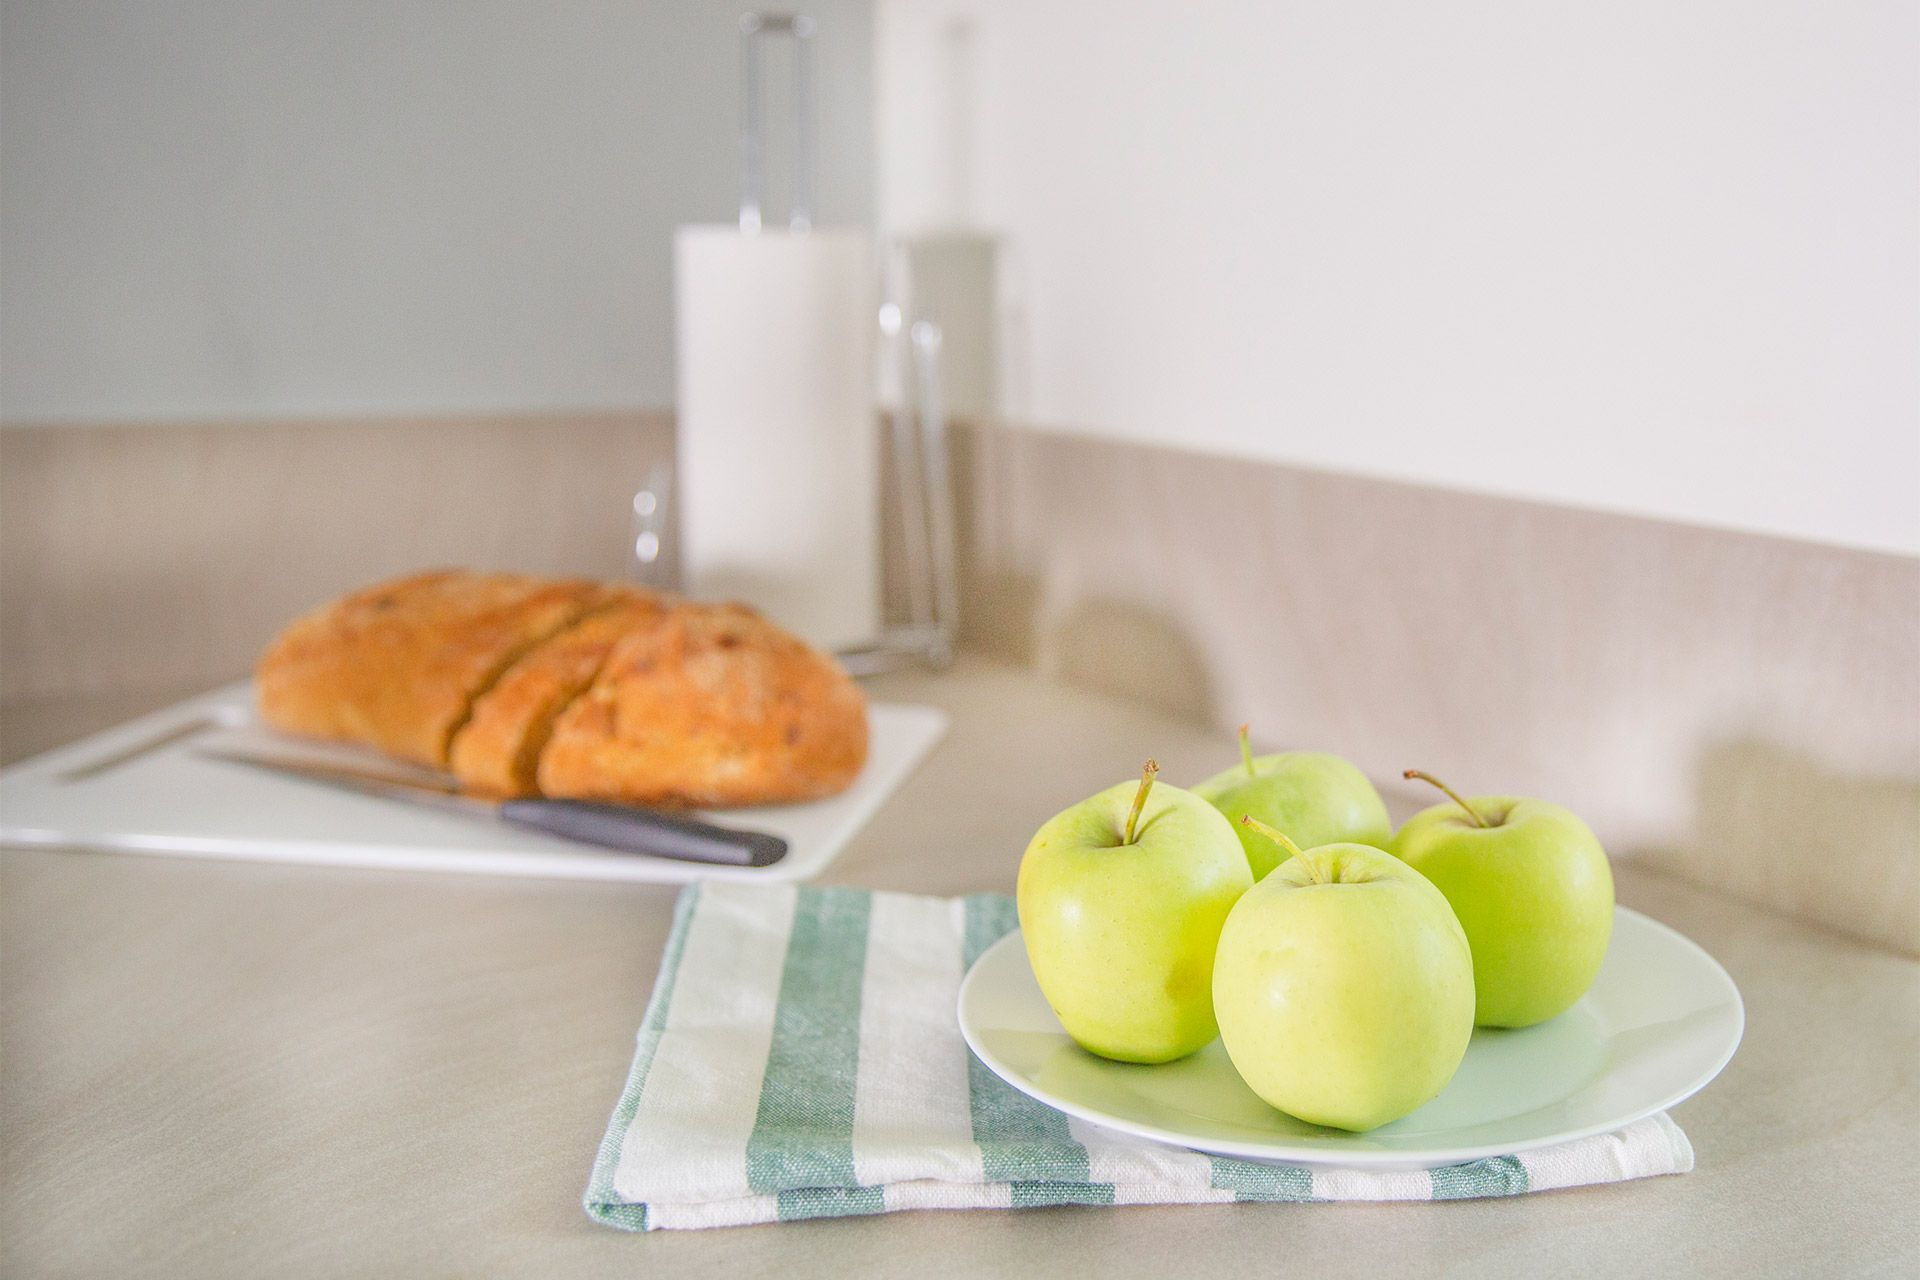 Apples and bread in kitchen of the Gordon vacation rental offered by London Perfect